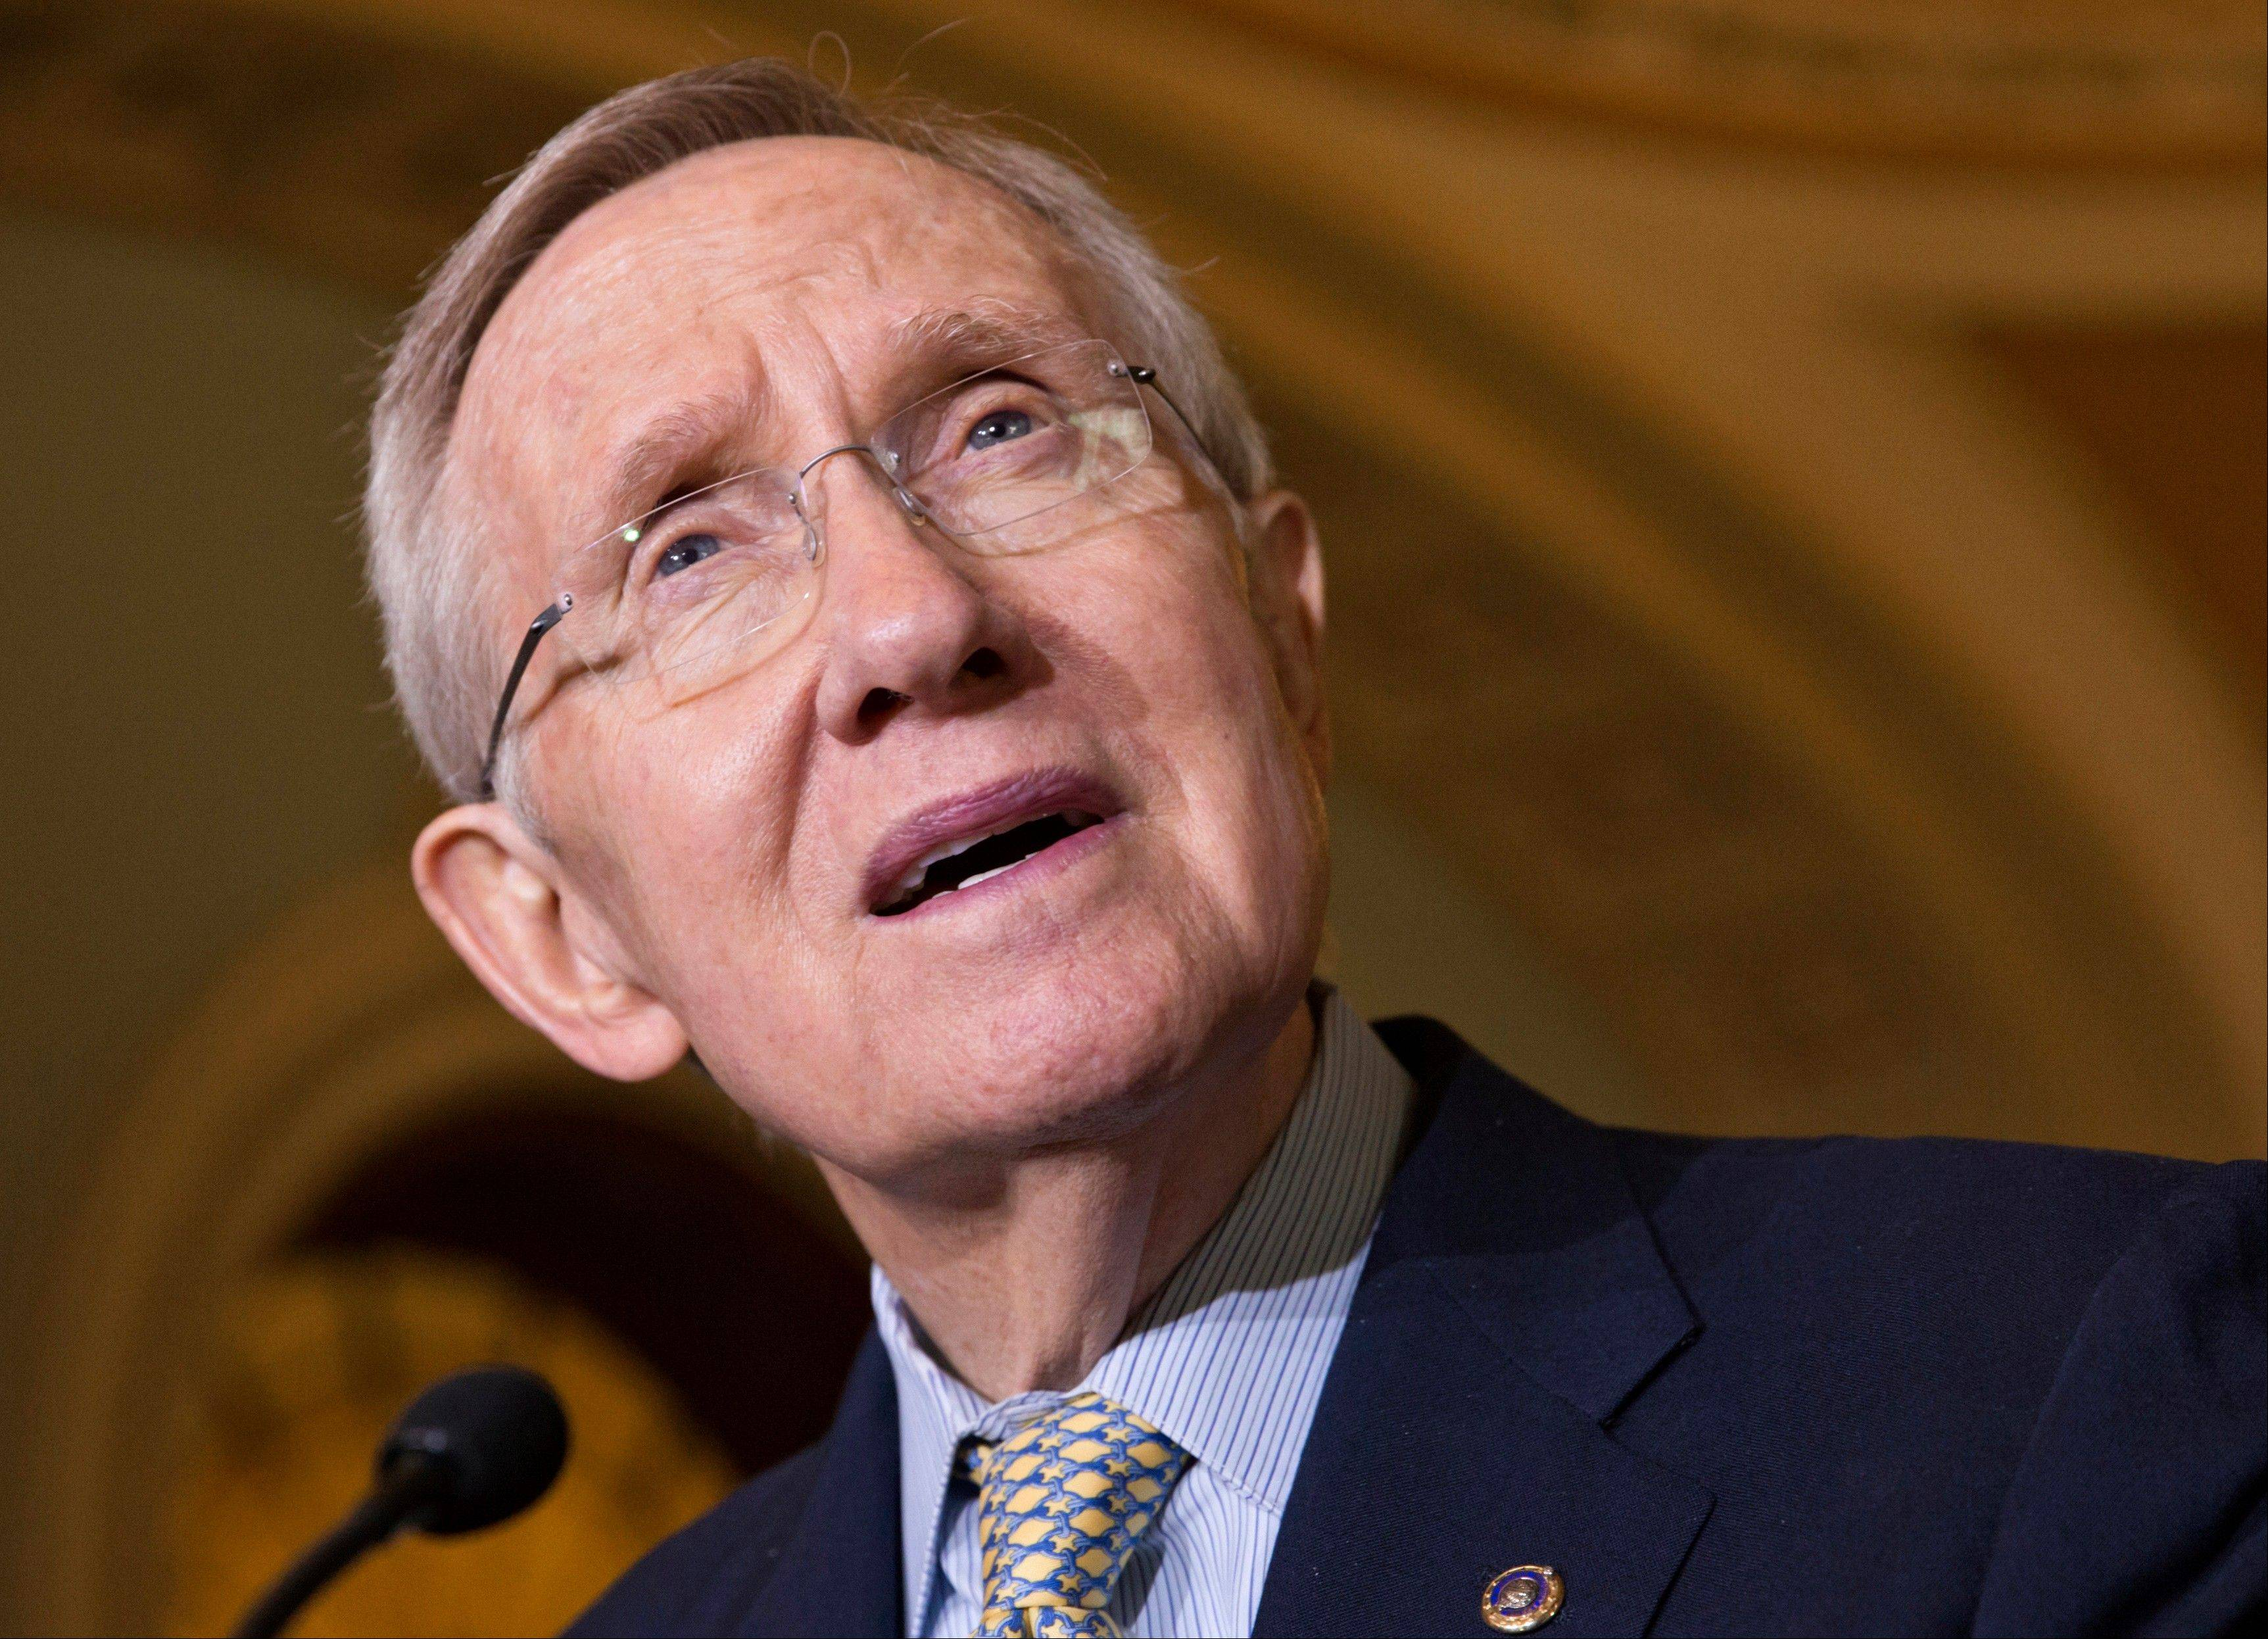 "Senate Majority Leader Harry Reid, D-Nev., blasted House Speaker John Boehner for his insistence that legislation barring workplace discrimination against gays would lead to costly, frivolous lawsuits and undermine job creation. ""Coming from the man whose caucus spent $3 million in taxpayer dollars defending the unconstitutional Defense of Marriage law in court, that's pretty rich,"" said Reid."